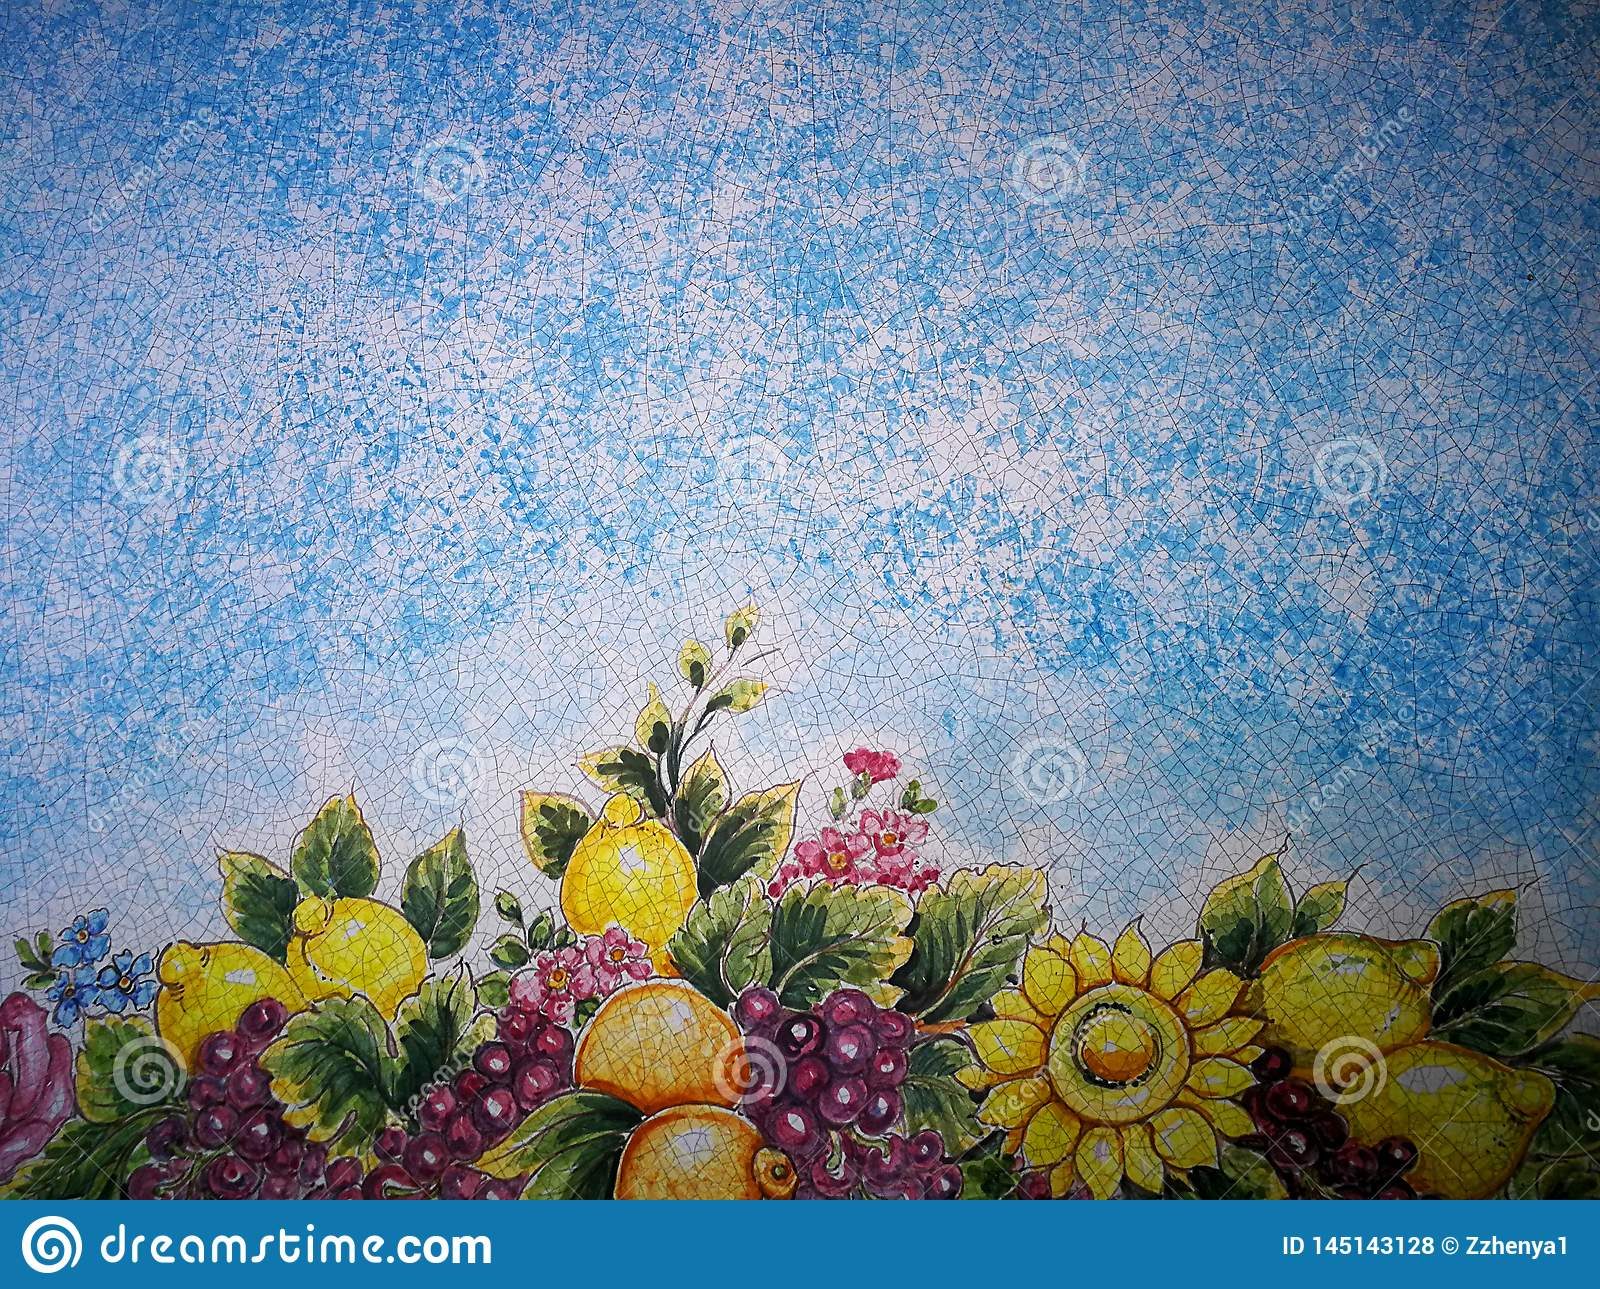 Blue background with mosaic flowered and fruit pattern.